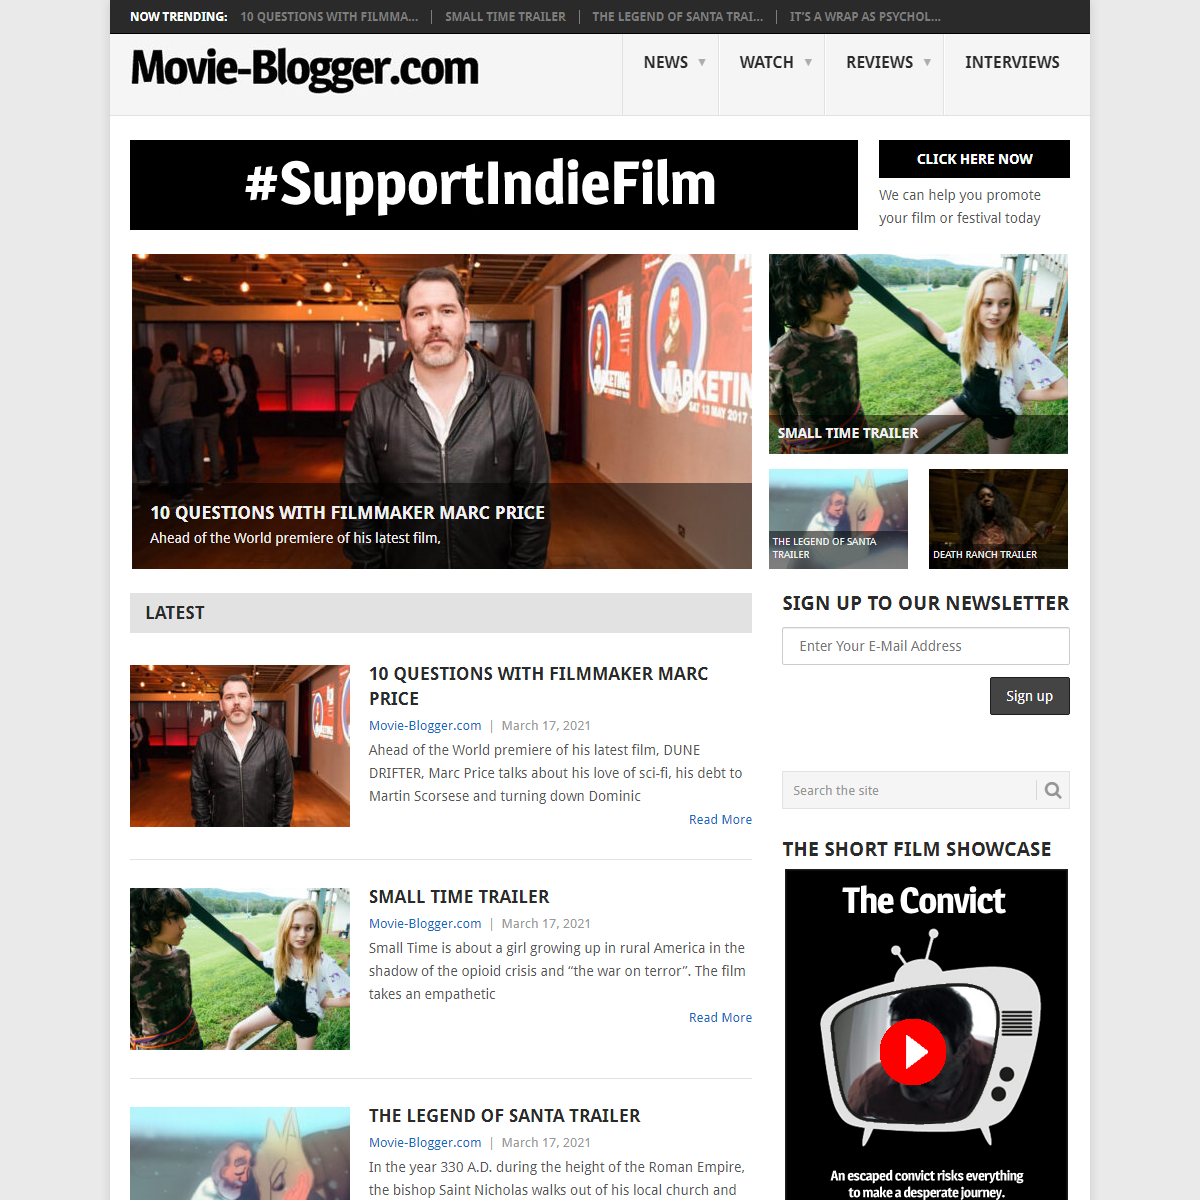 Movie-Blogger.com - Movies... and a whole lot more!